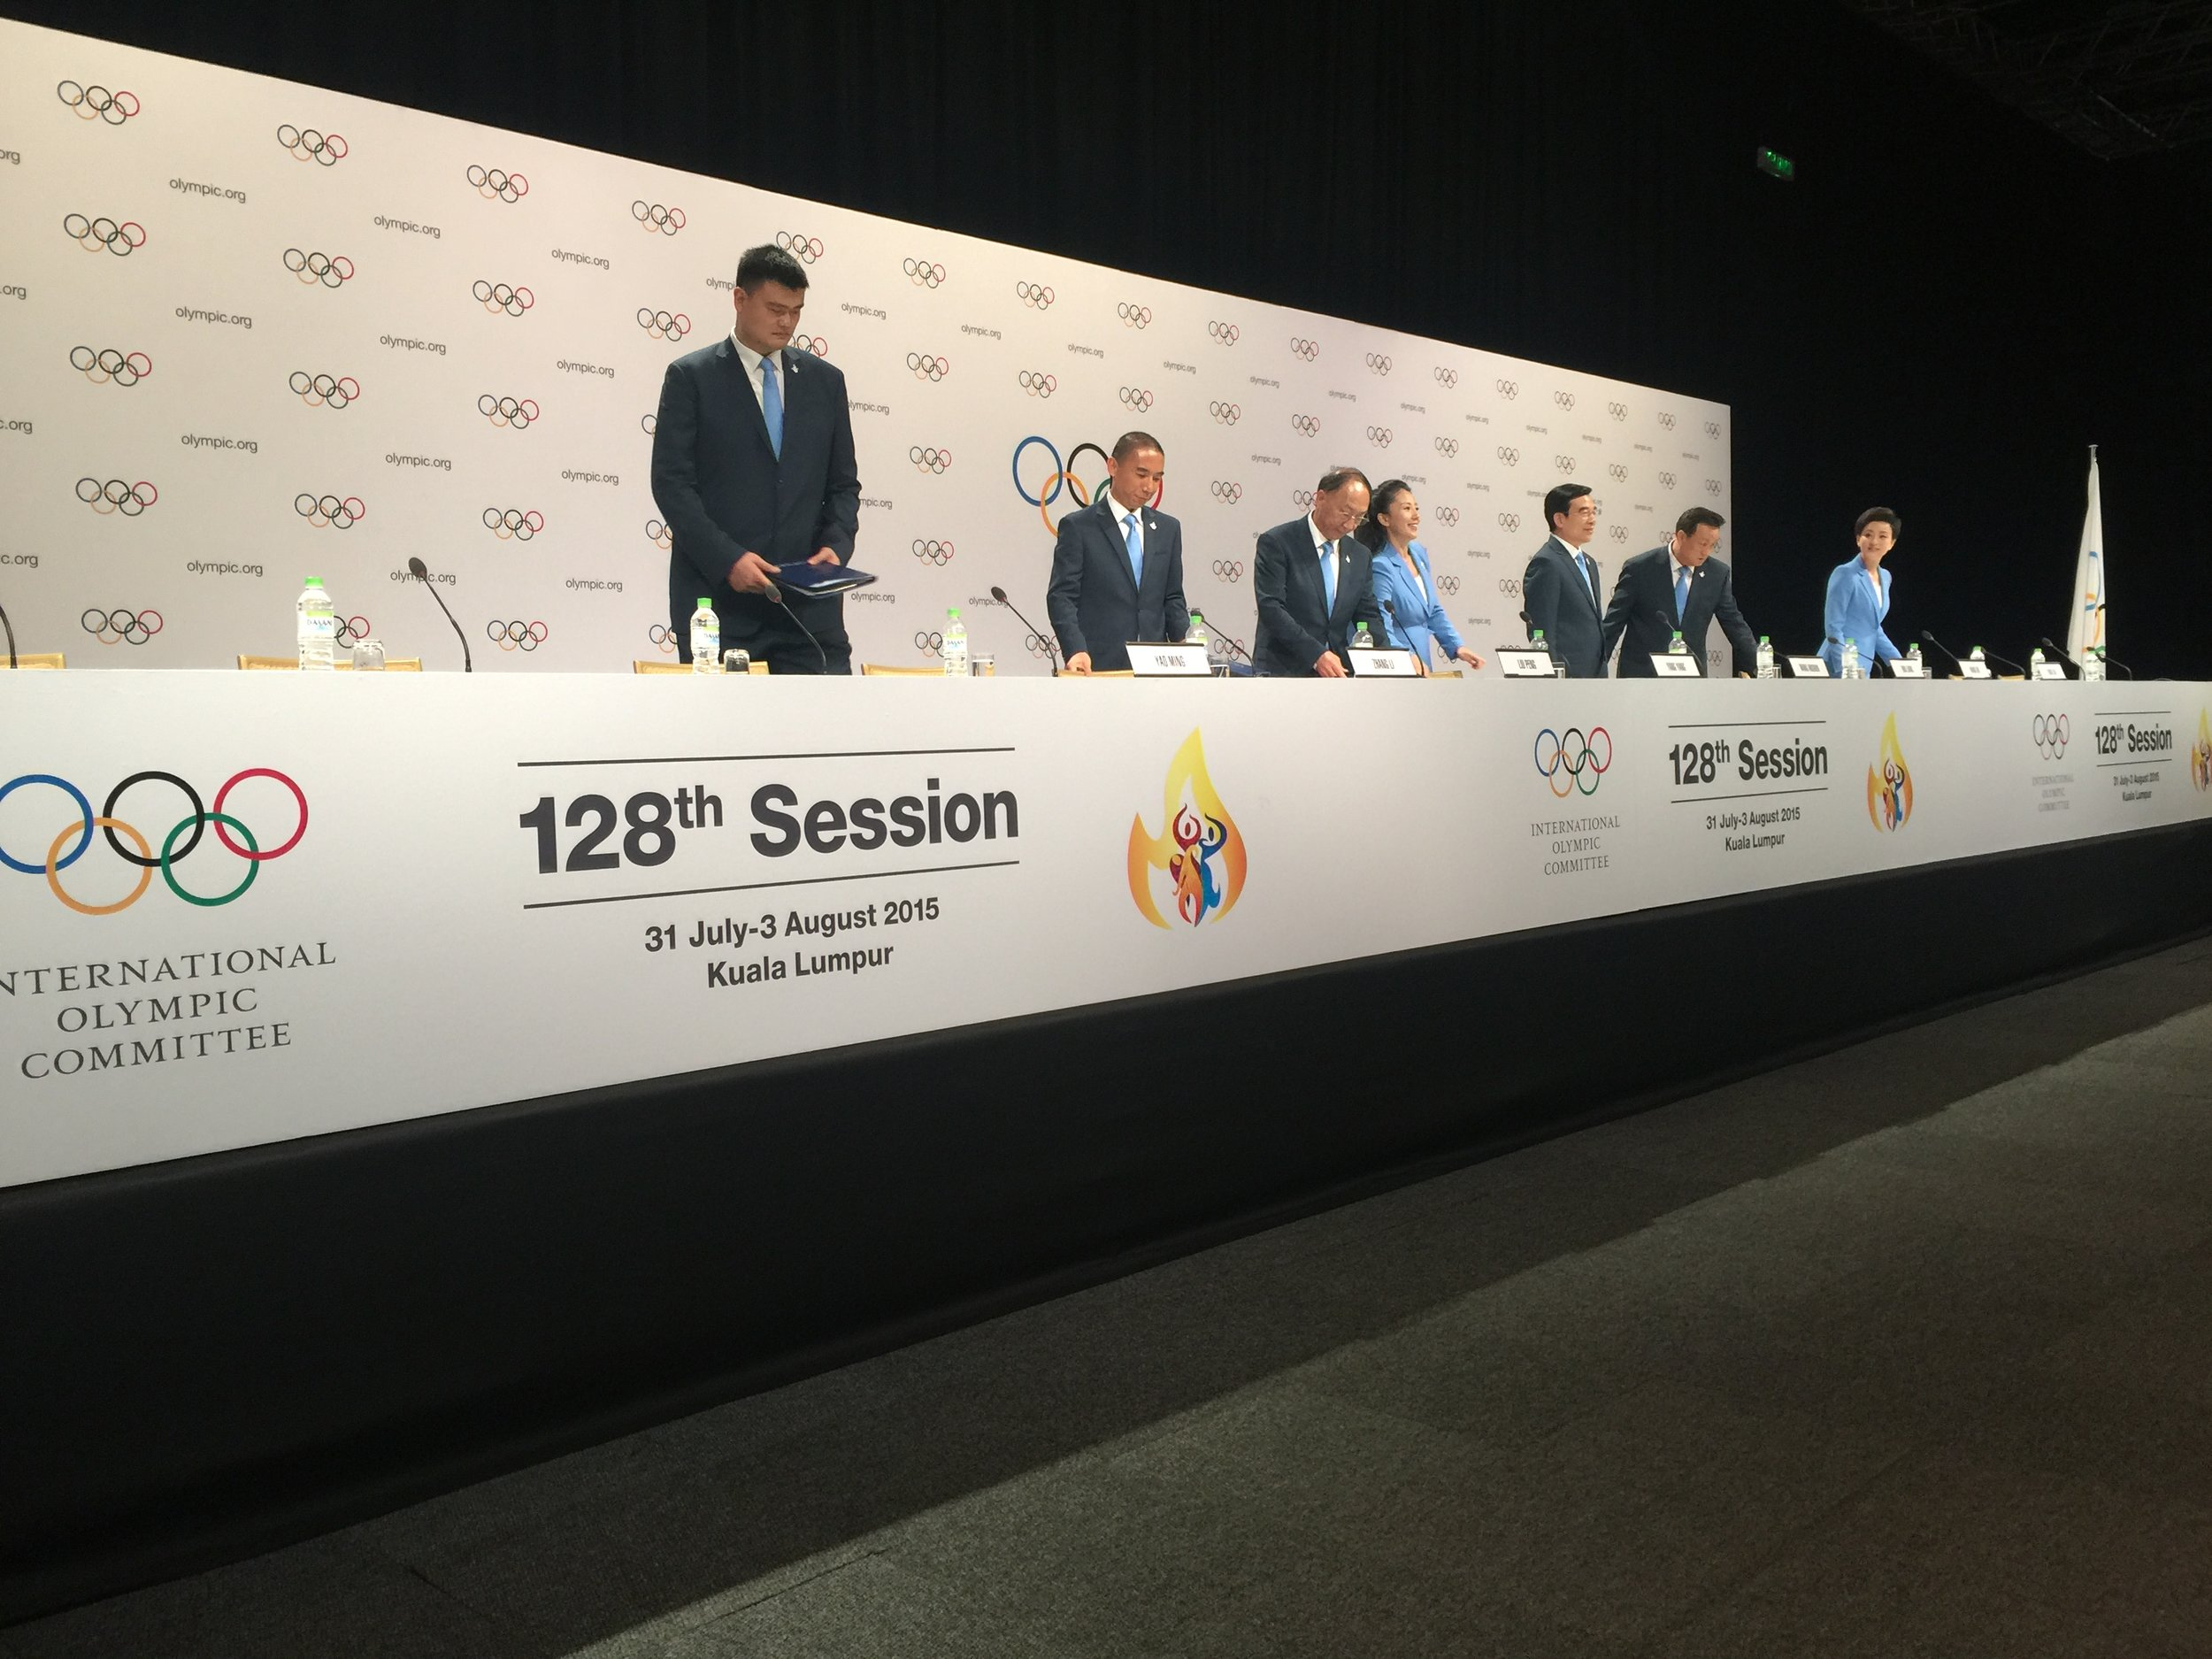 The Chinese bid team, including basketball star Yao Ming, at its post-presentation news conference